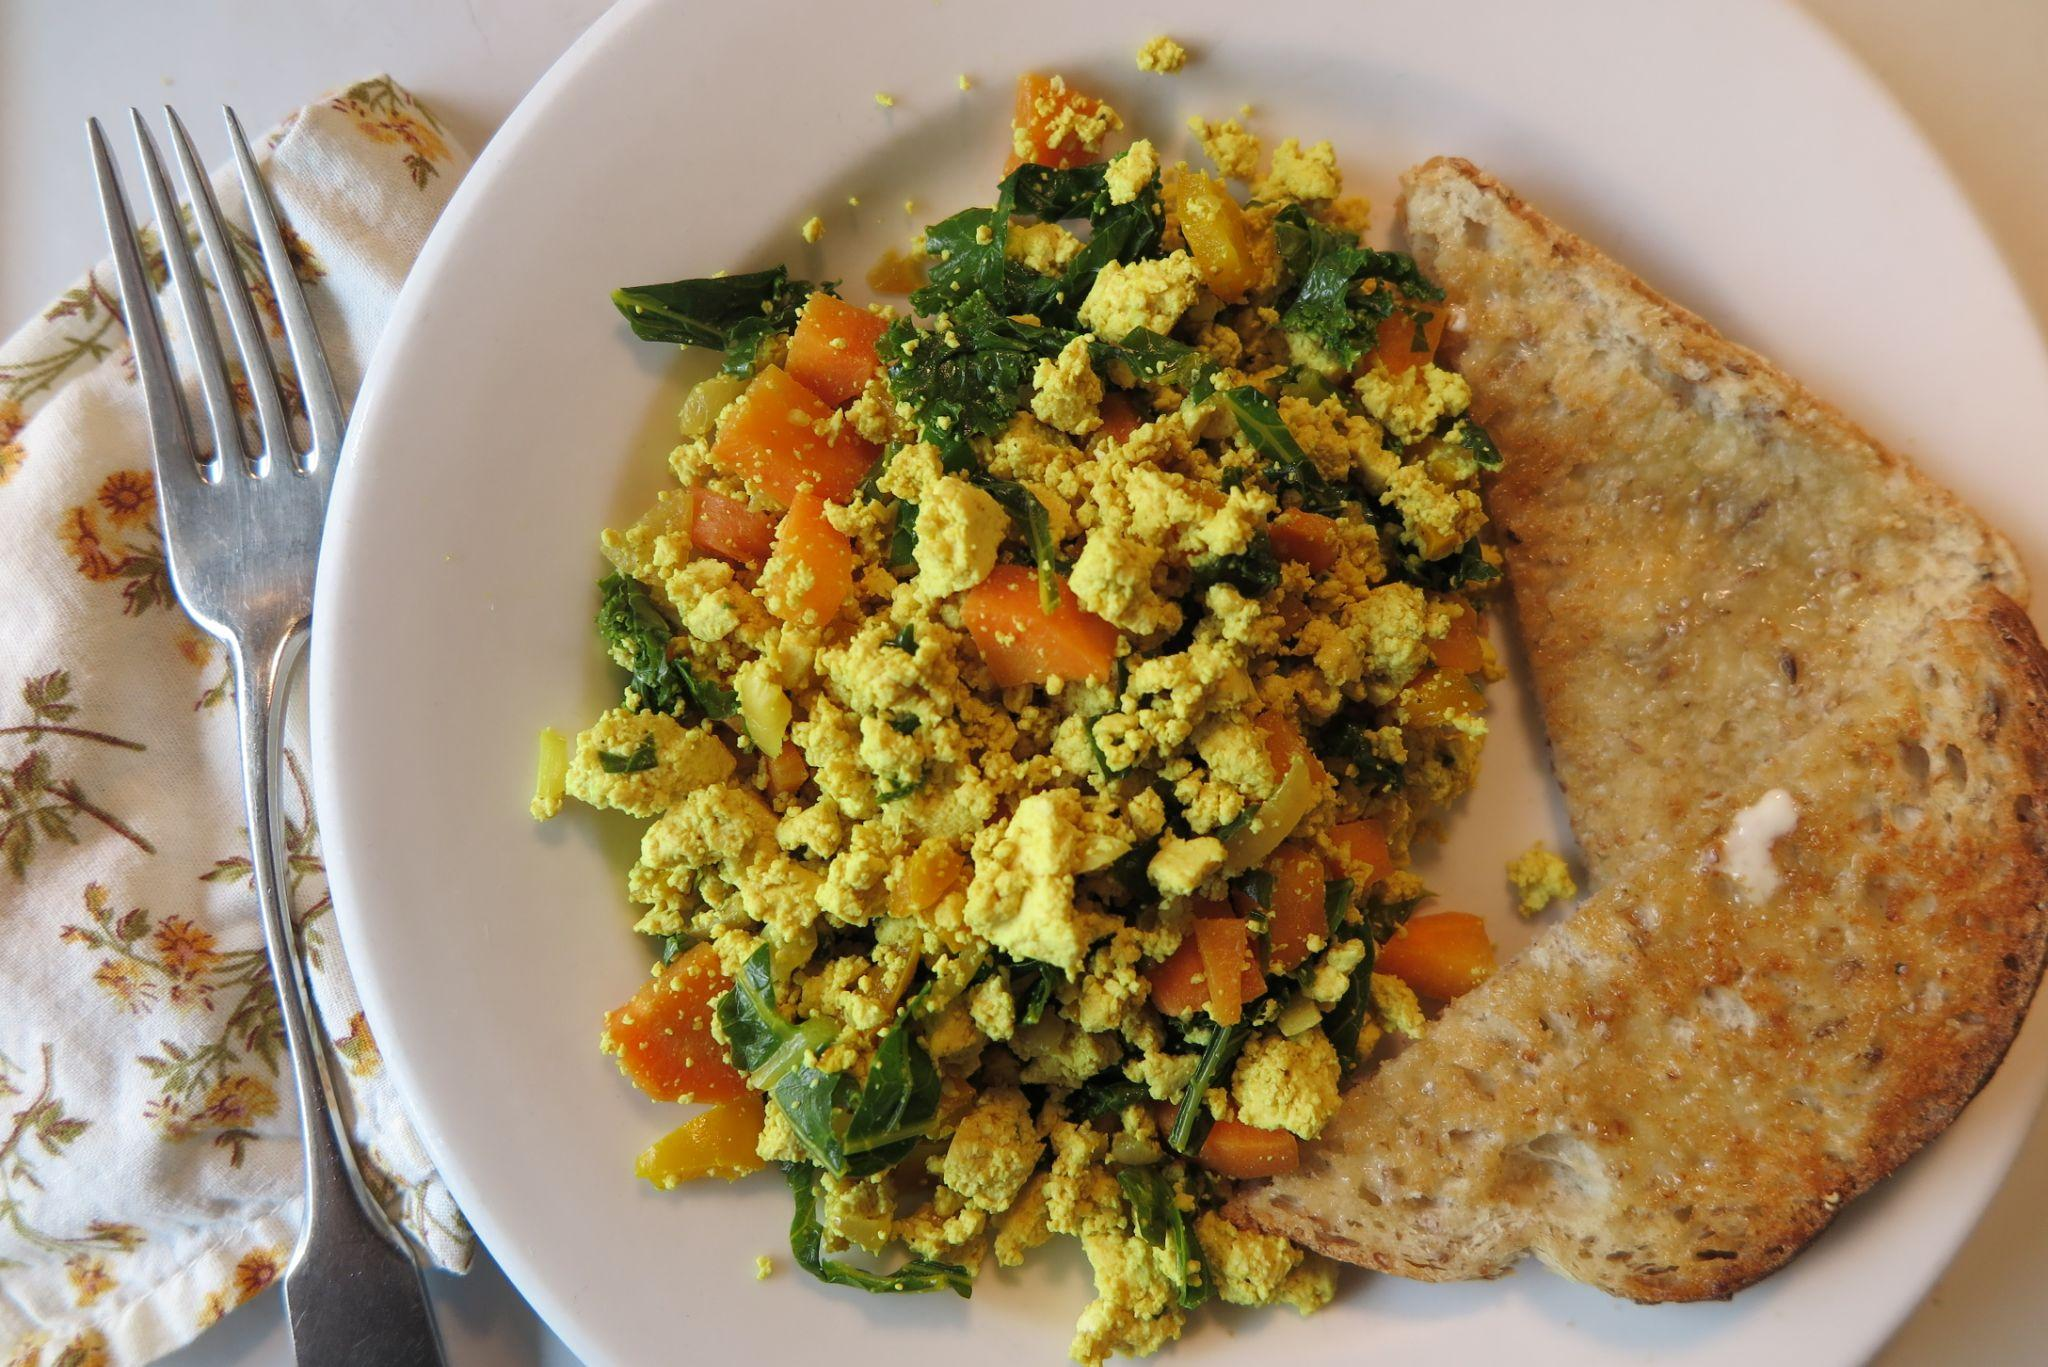 Tofu scramble on a plate with toast